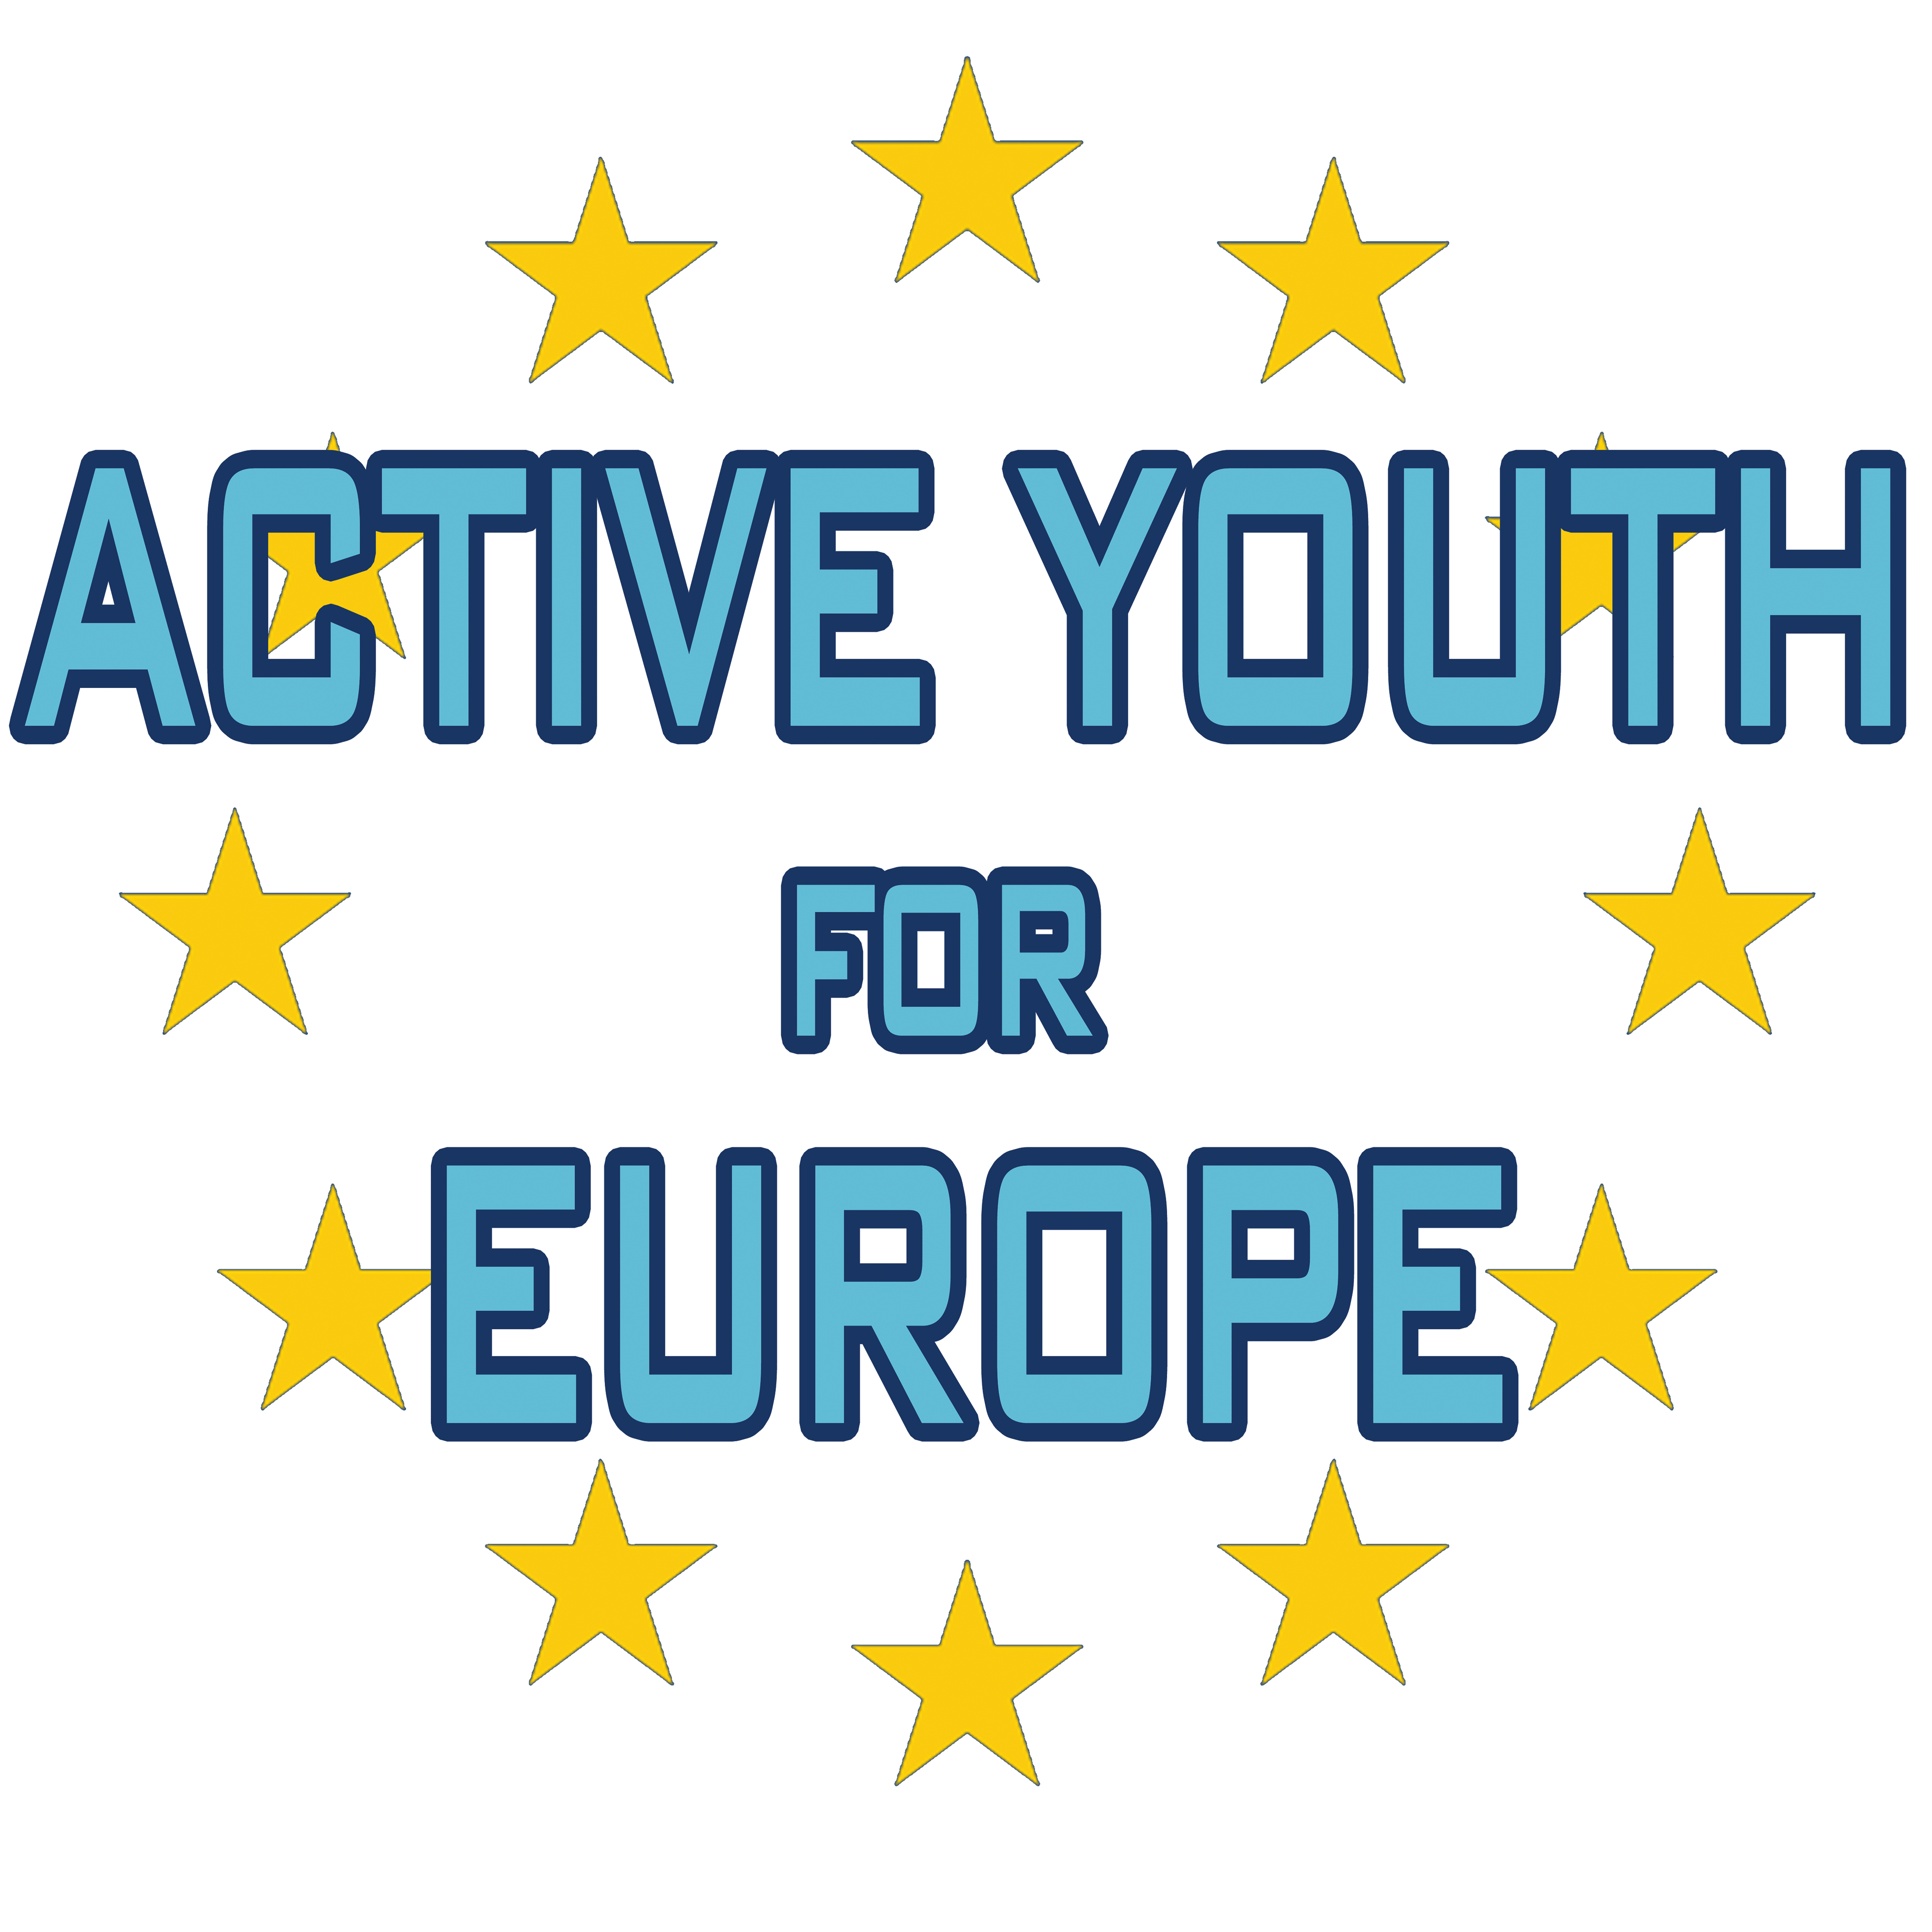 ACTIVE YOUTH FOR EUROPE, Italy